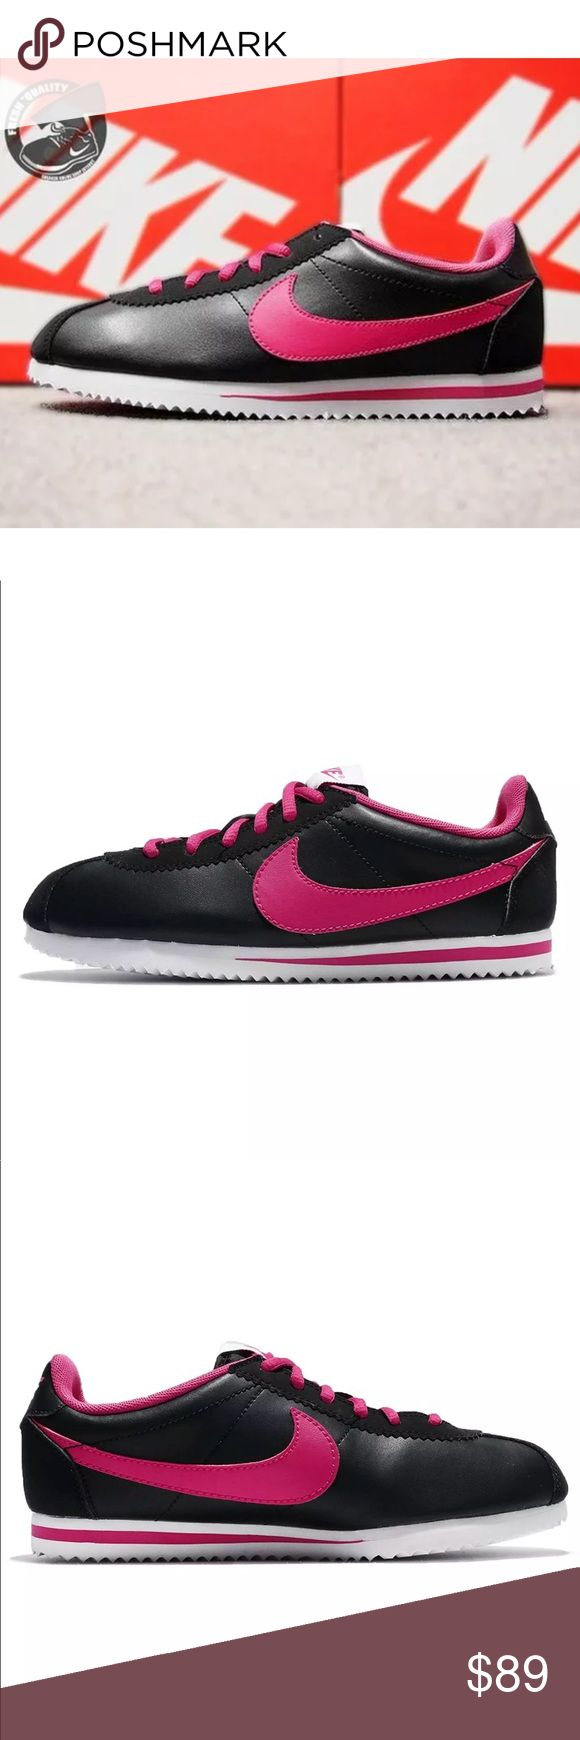 NIKE CORTEZ BLACK PINK WOMENS SHOES NEW CLASSIC BRAND NEW WITHOUT BOX,  Listed in women's sizing ORDER YOUR WOMENS SHOE SIZE Conversion  5.5 YOUTH = 7 WOMENS  6 YOUTH = 7.5 WOMENS  6.5 YOUTH = 8 WOMENS  7 YOUTH = 8.5 WOMENS   ALL SIZES ARE LISTED ACCORDING TO NIKES SIZE CHART WHICH I ADDED ABOVE FOR YOUR Convenience.   Ships same day or next.  Price is firm.  100% authentic & direct from Nike Nike Shoes Sneakers